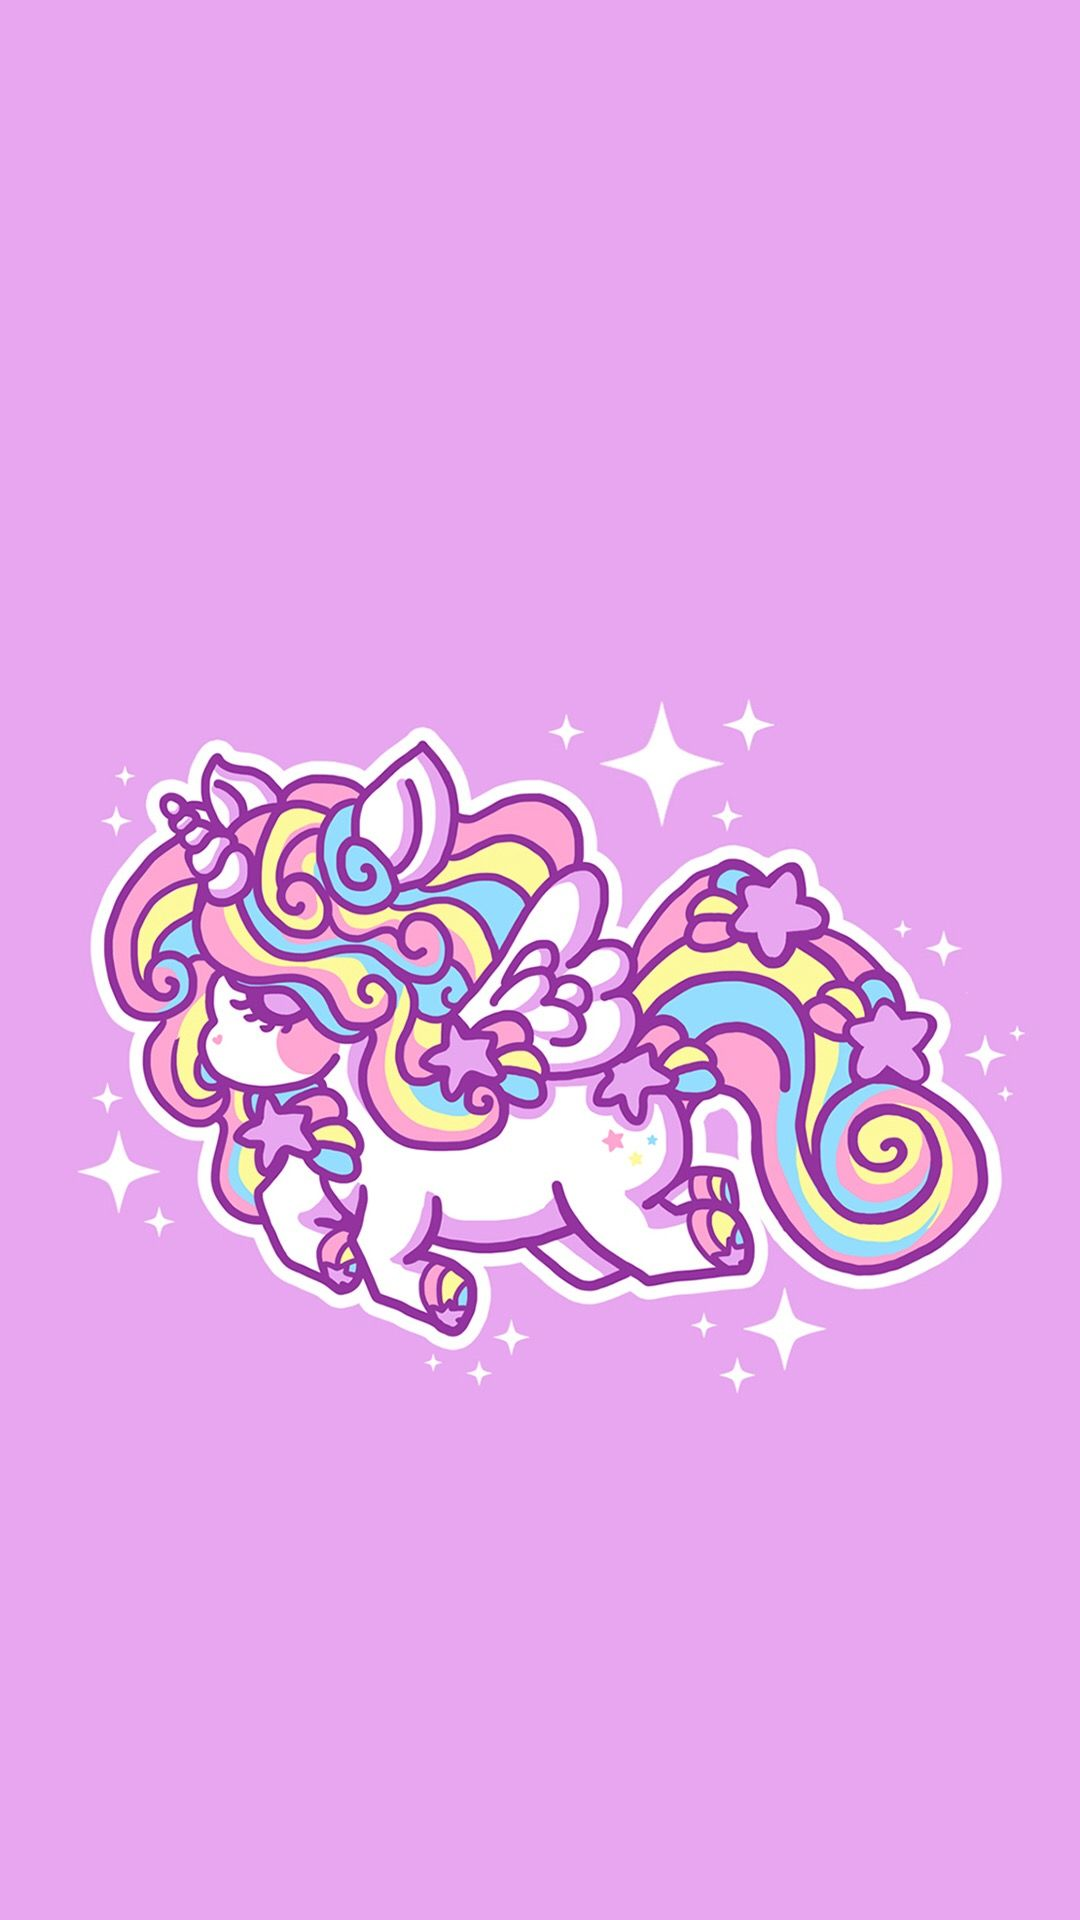 Pin by diana huet on wallpapers Unicorn wallpaper, Cute